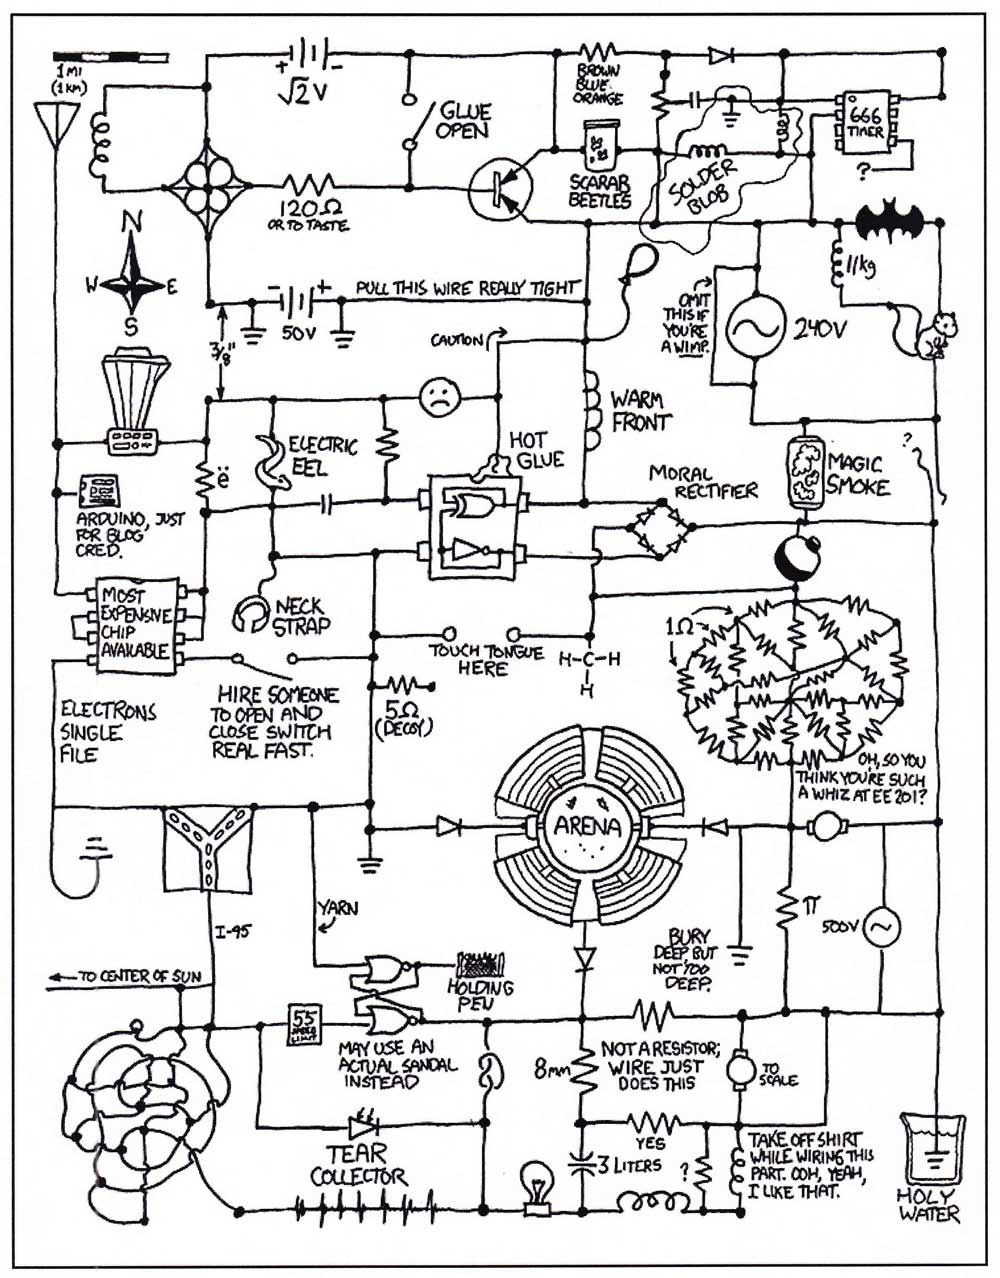 Circuit Diagram Joke Wiring Will Be A Thing Also Maker 2000 Download On Electric Schematic Synergistic Research Hot Now With 100 More Snake Oil Rh Changstar Com Free